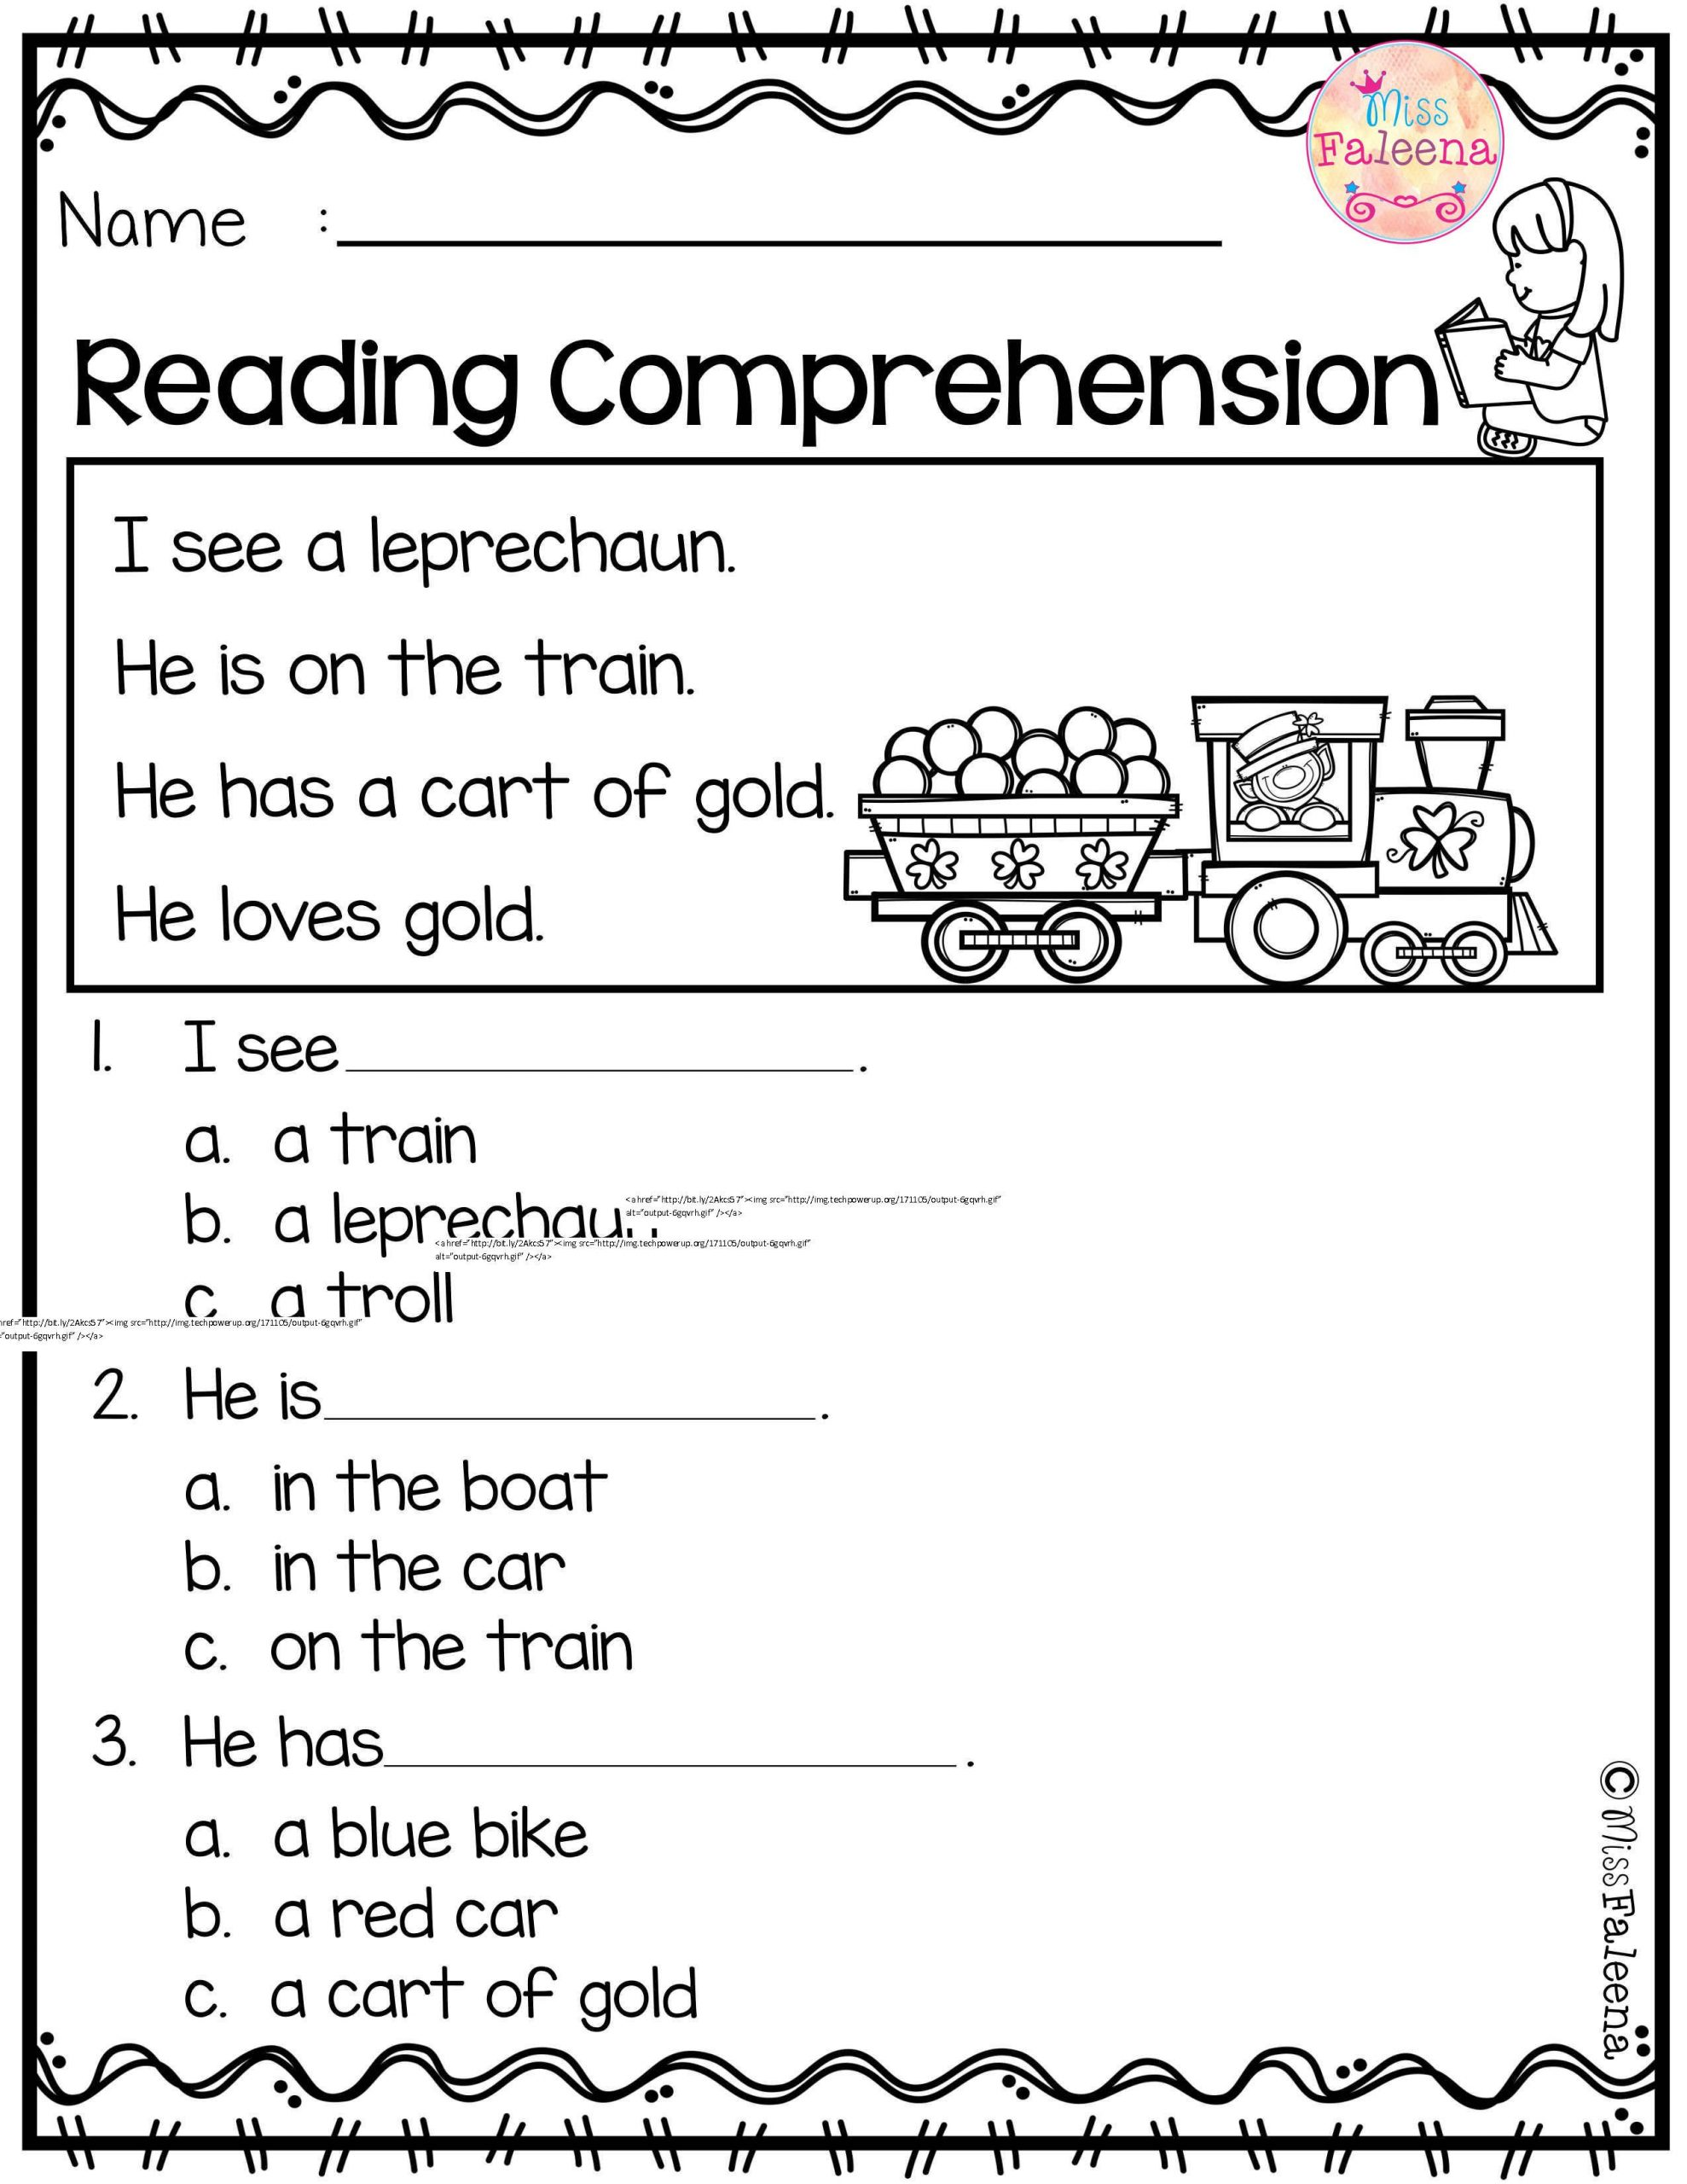 Kinder Reading Comprehension Worksheets March Reading Prehension